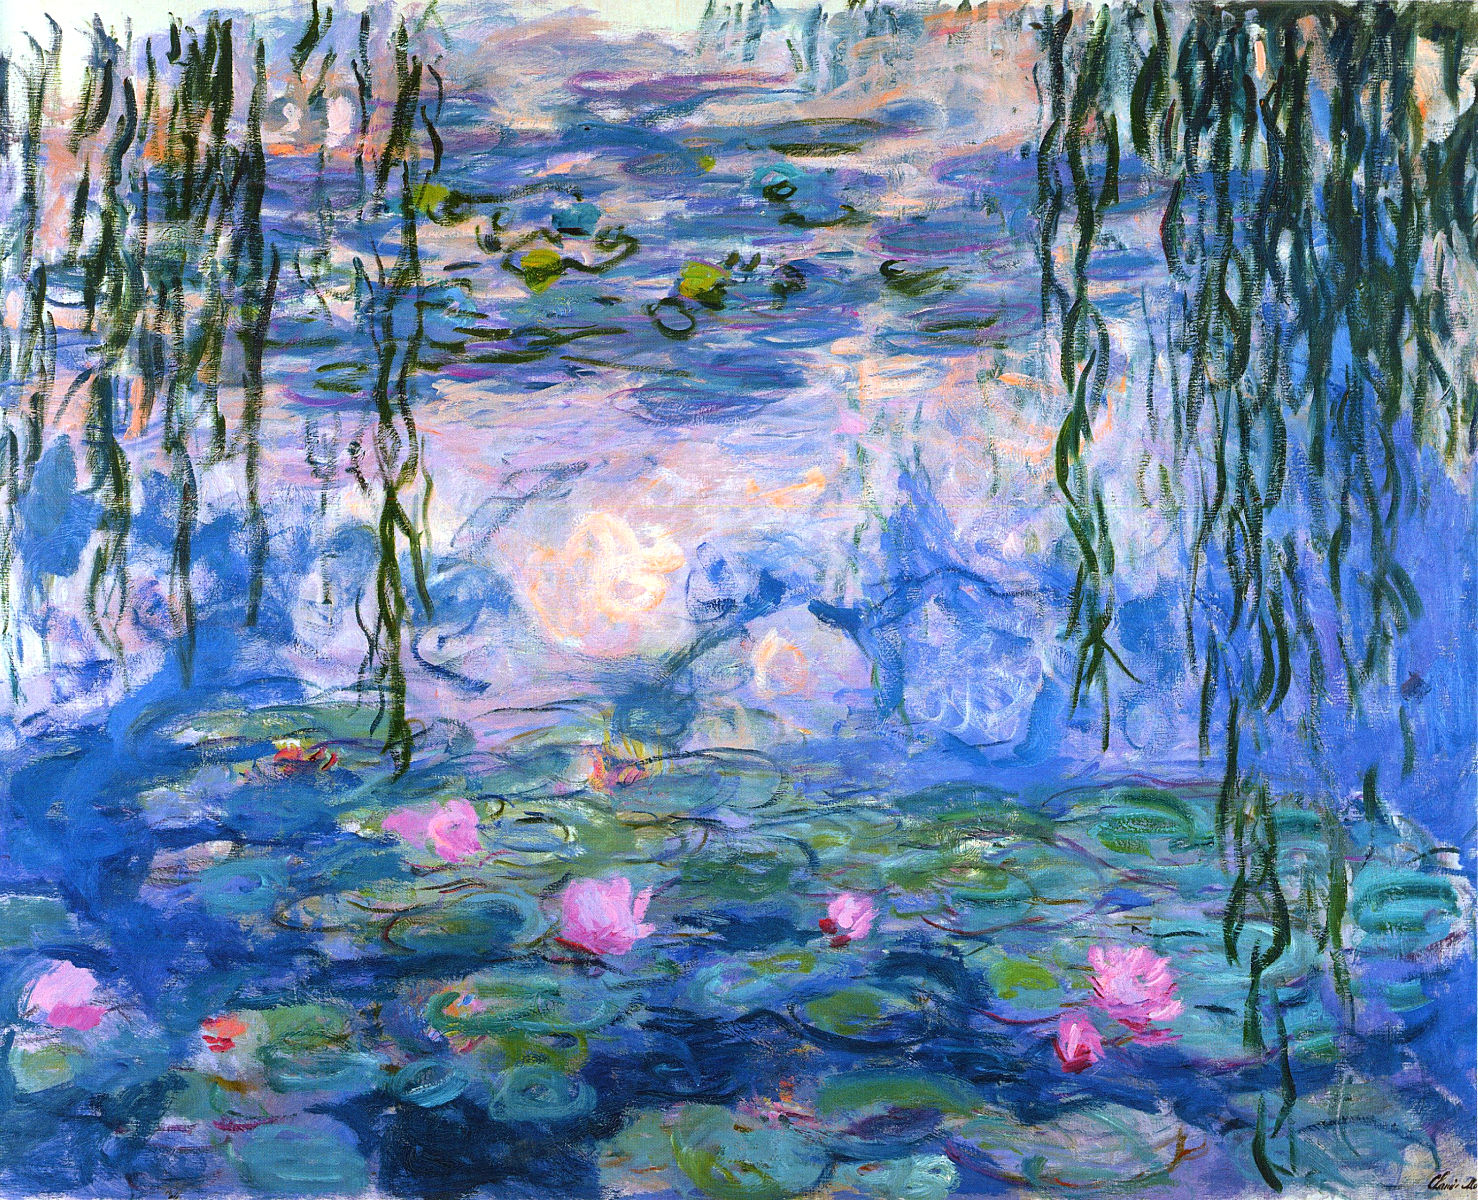 Water Lilies - A Series by Claude Monet